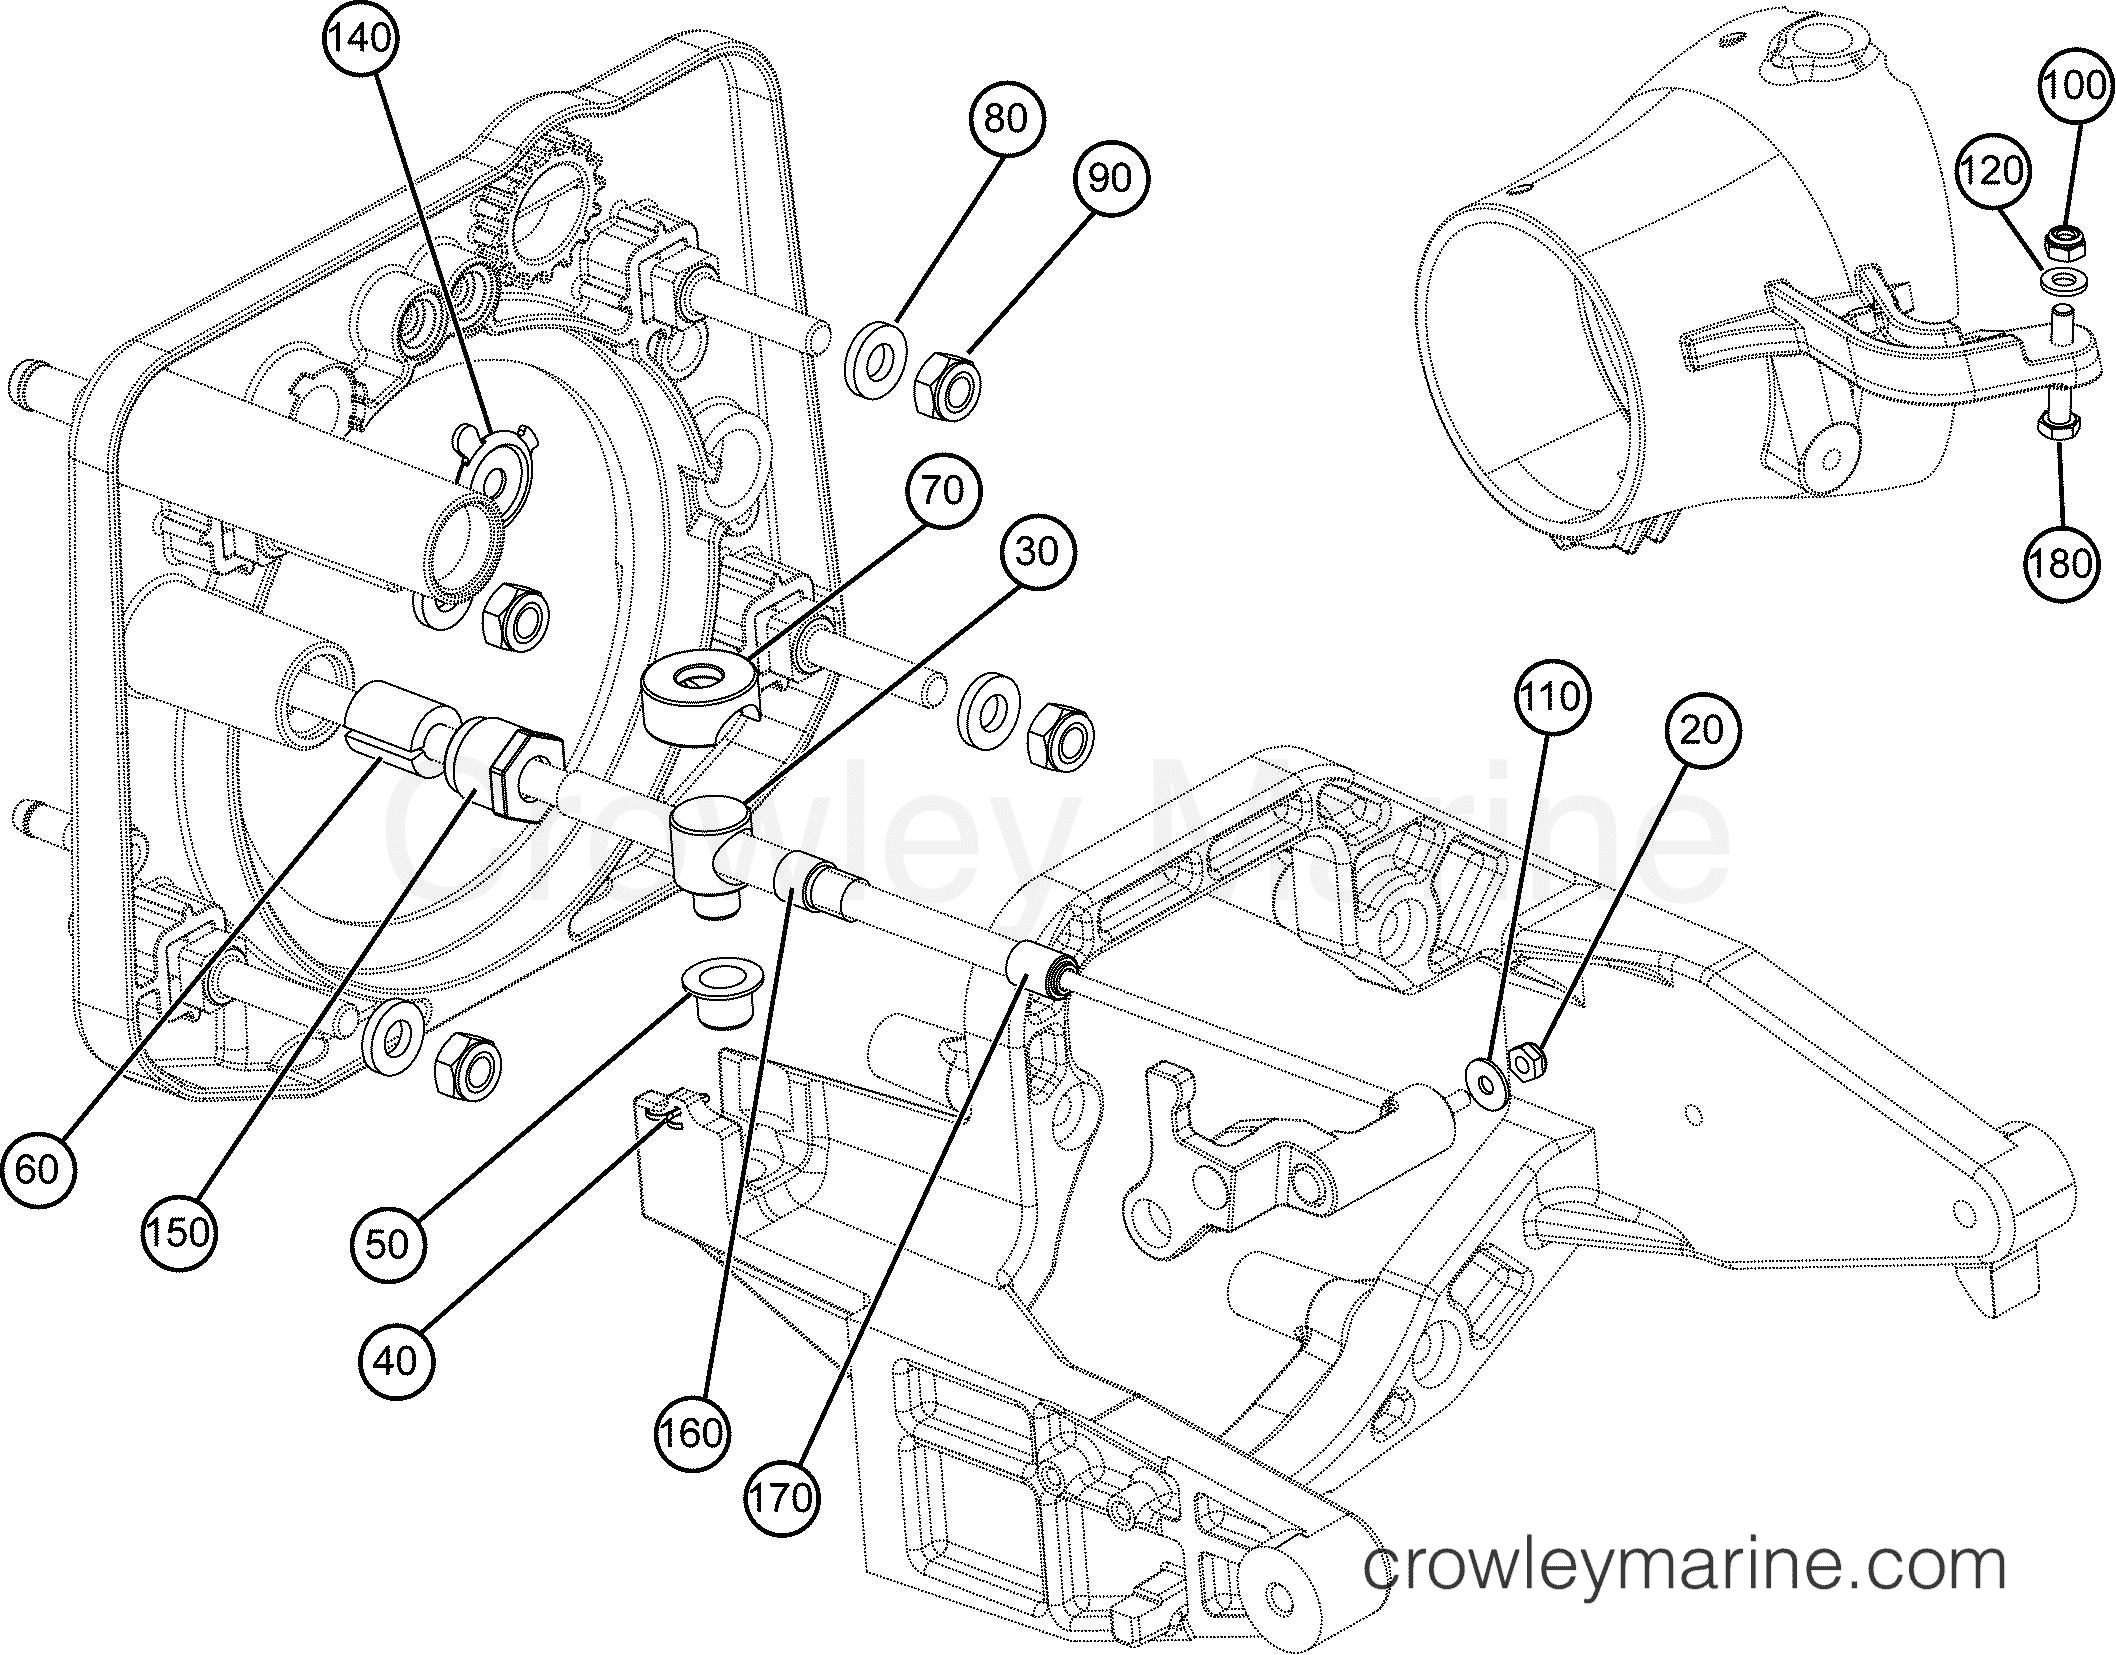 Reverse Cable And Hardware Af Rotax Powertrains 150 440023afa Engine Diagram Section